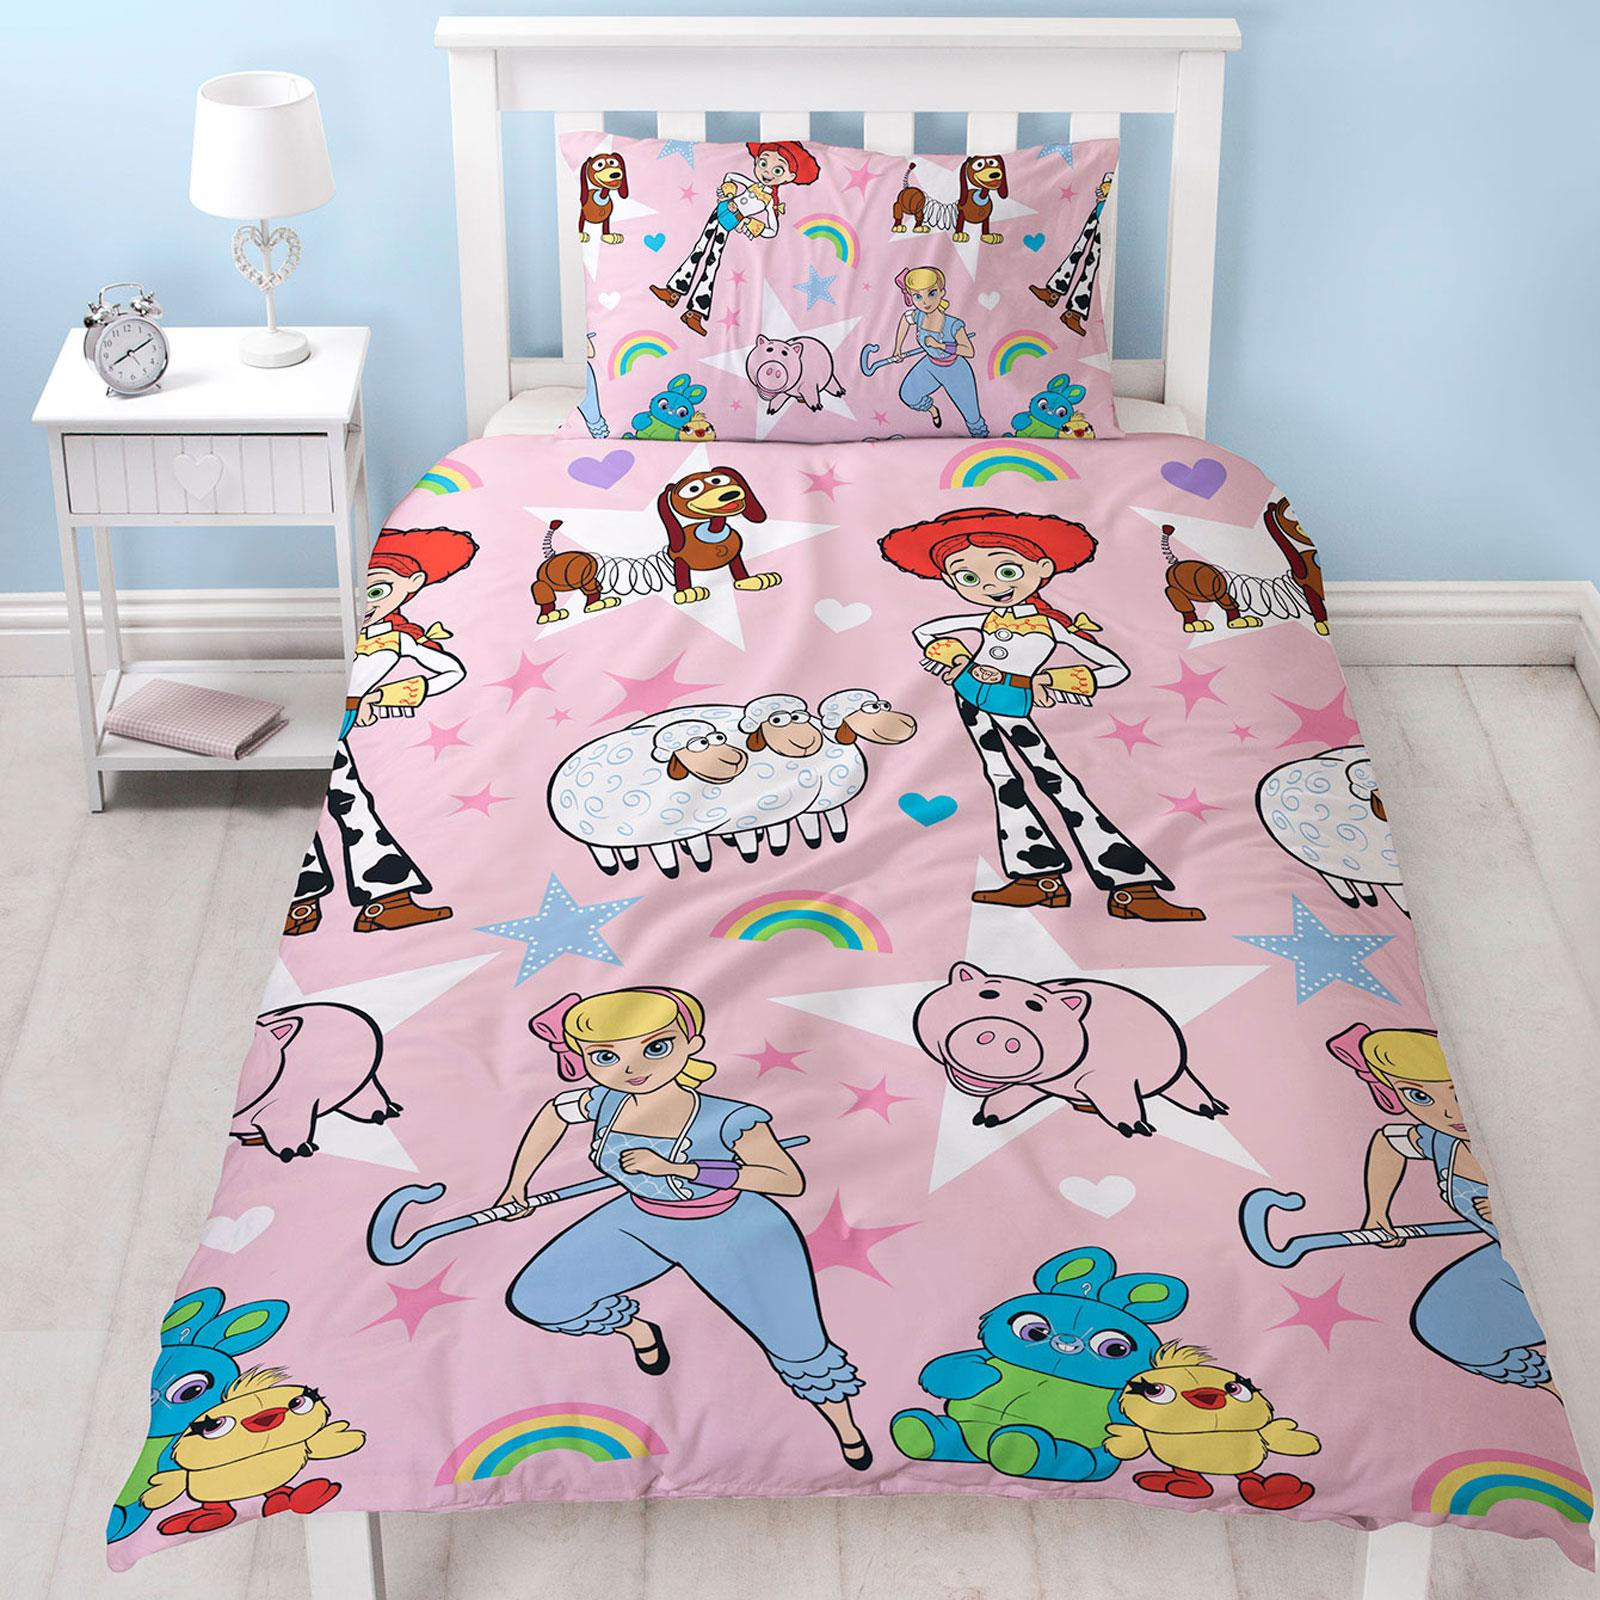 Minions Duvet Sets and Ready Beds Various